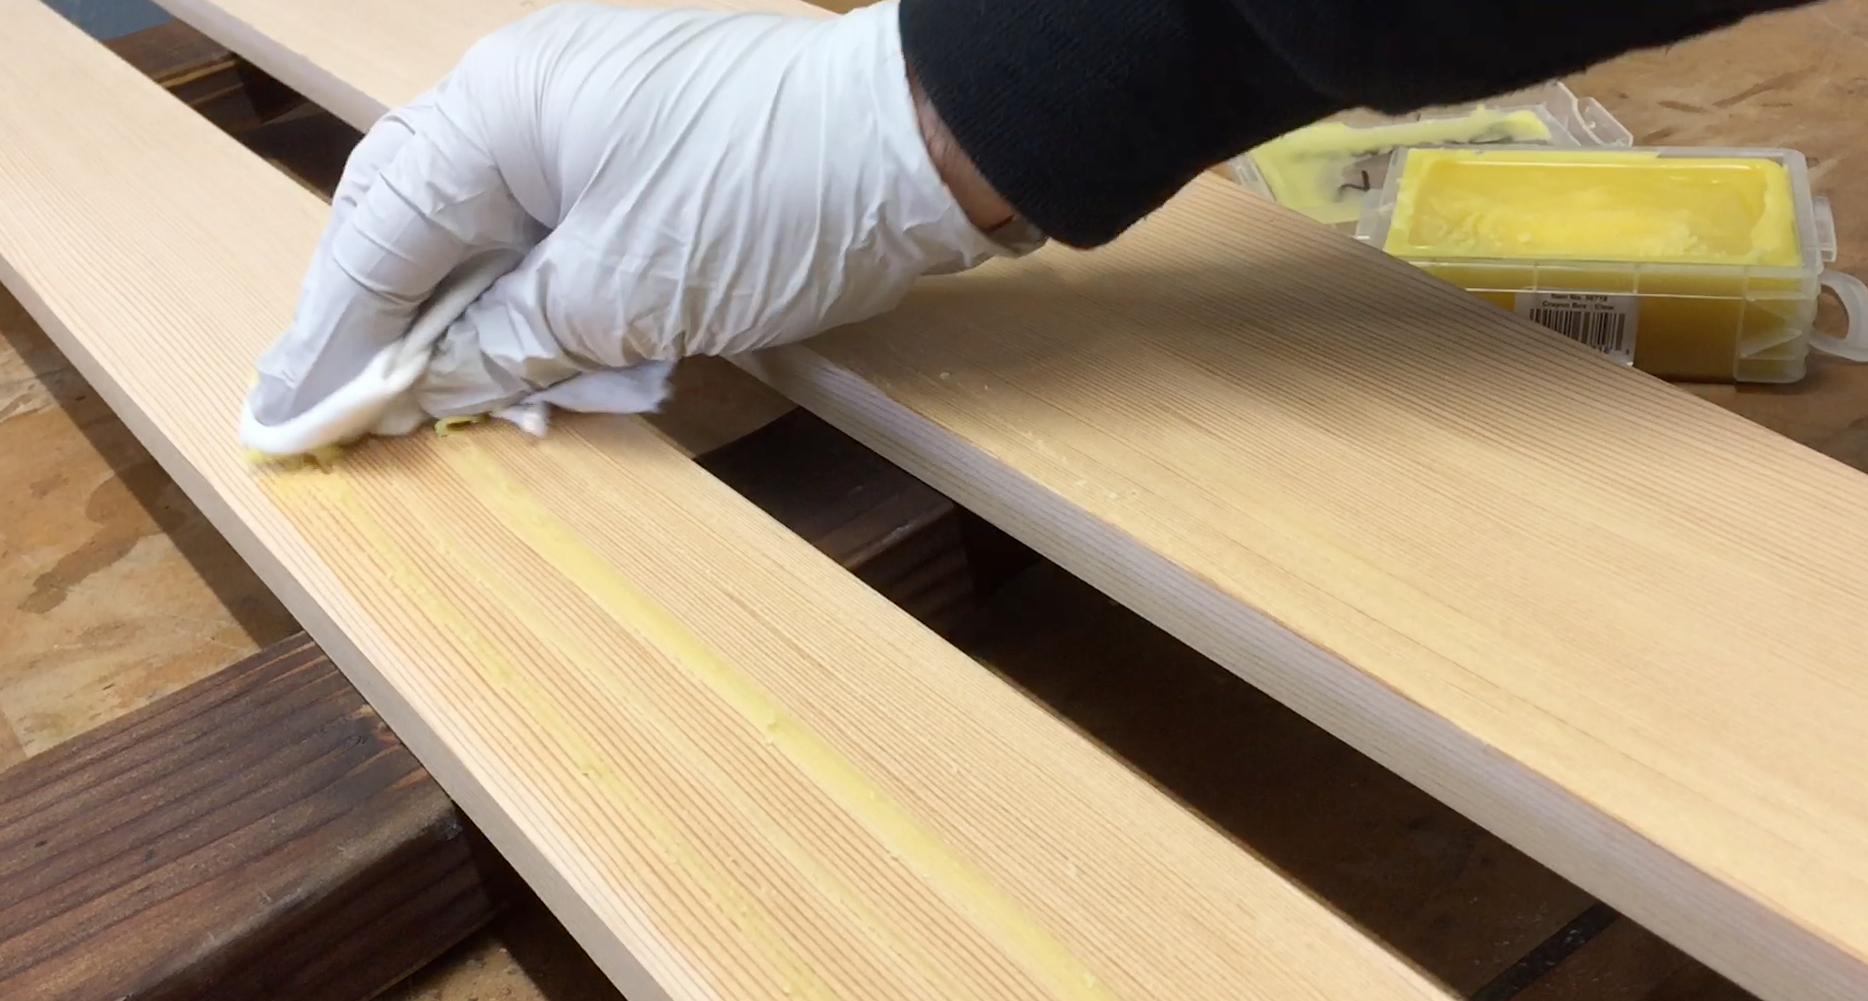 Beeswax Waterproofing/Wood Finish Paste – Woodworking